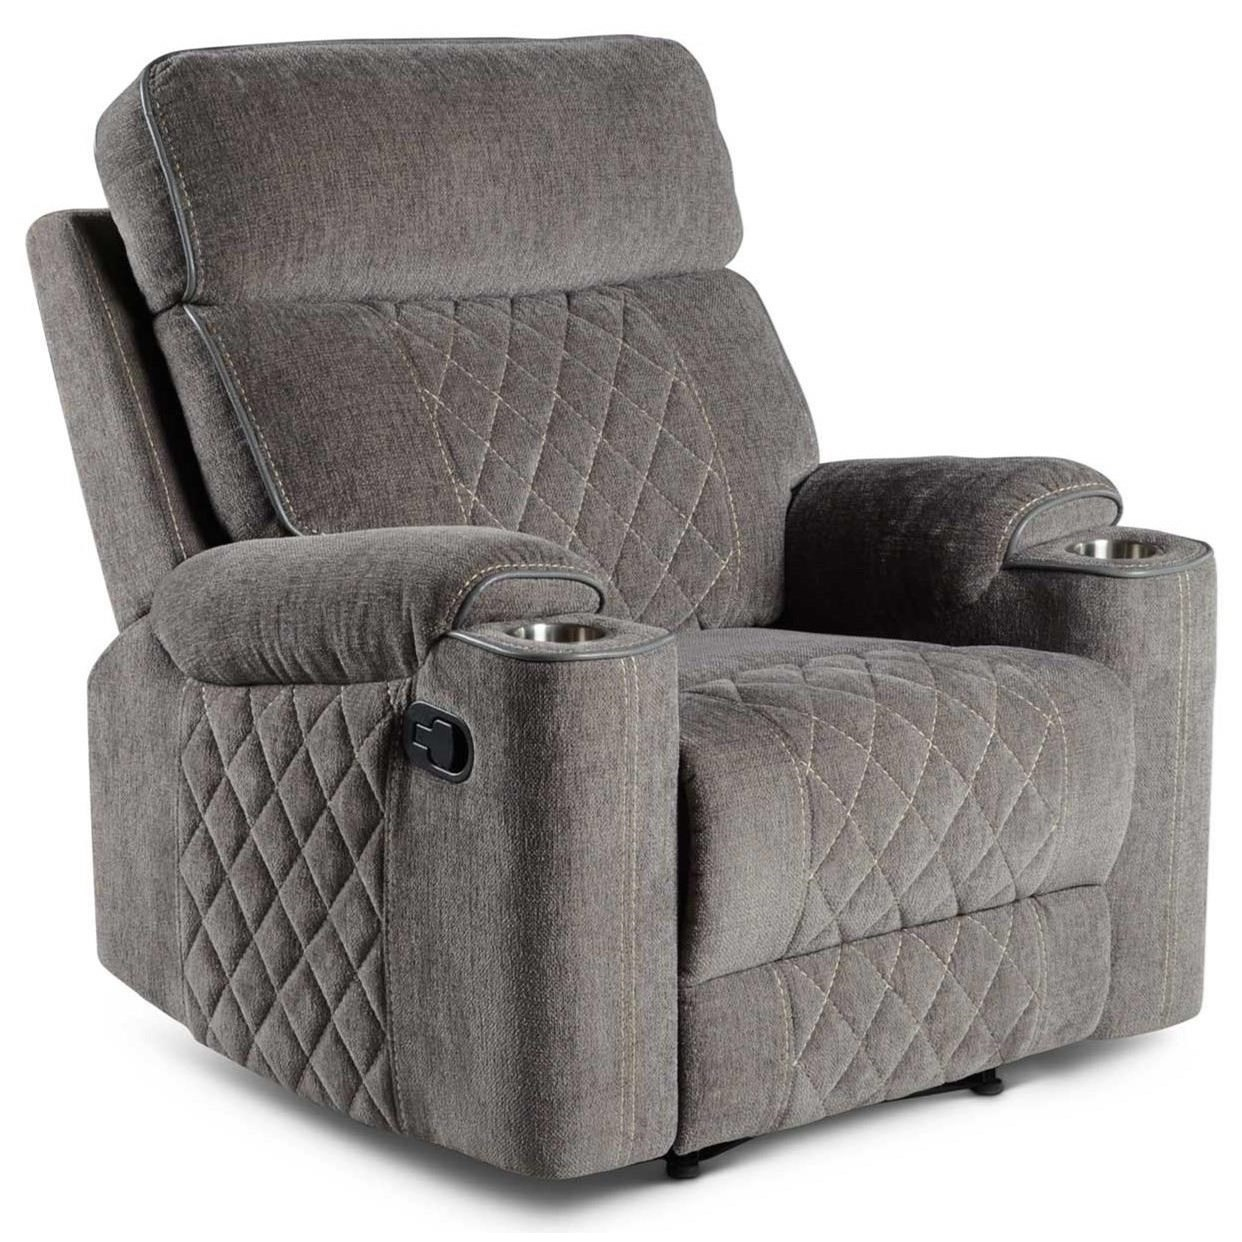 Crawford Motion Recliner Chair by Steve Silver at Northeast Factory Direct